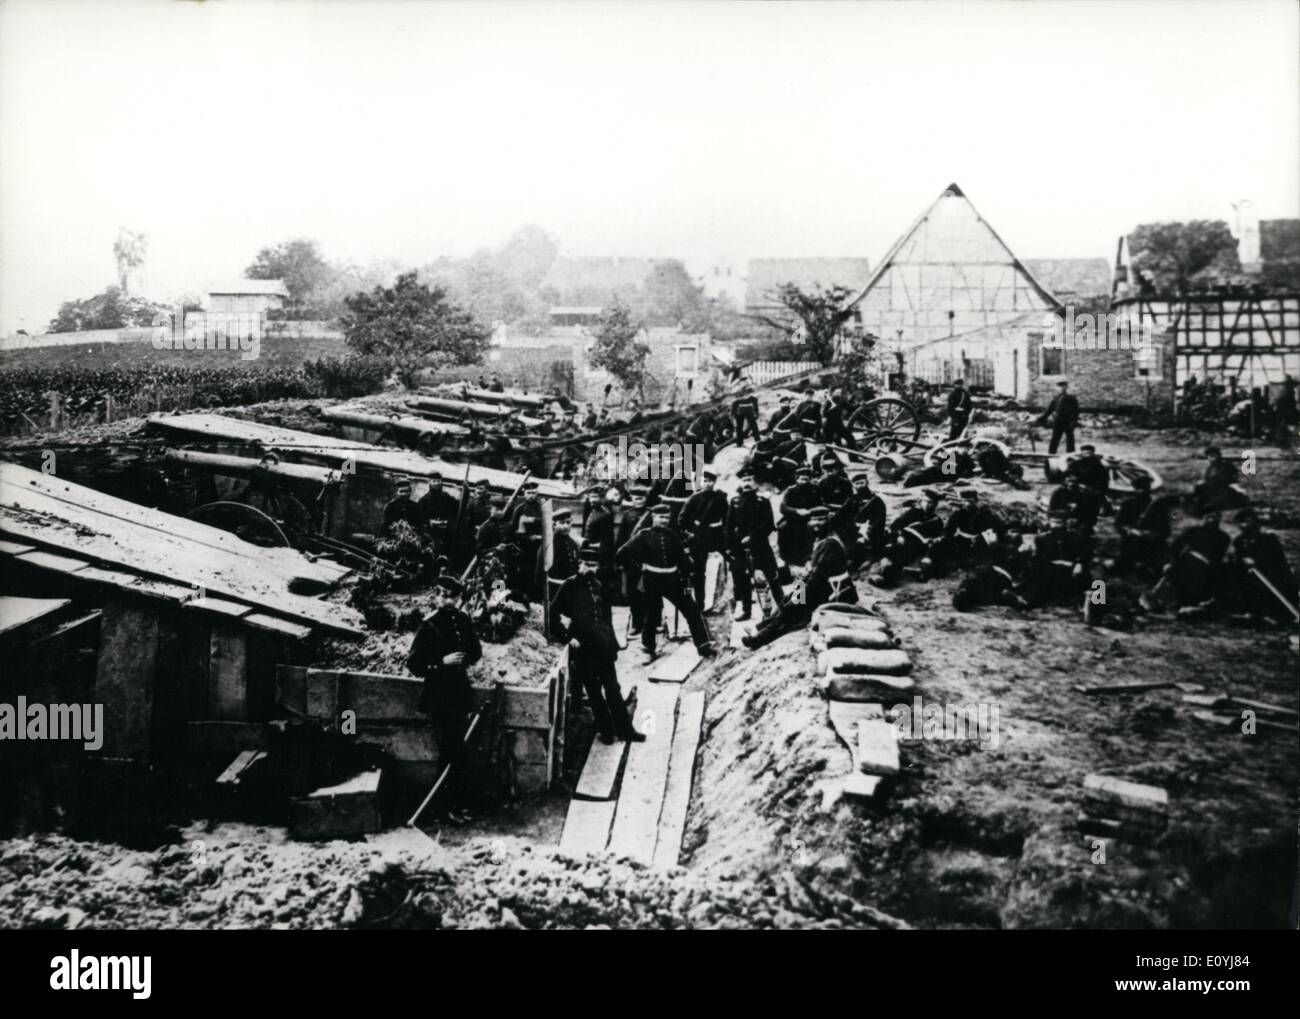 Jul. 07, 1970 - Franco-German War: On July 9th, 1870, France declared war to Prussia. The France Photo shows. Prussian artillery, laying siege to the city of Strasebourg. - Stock Image